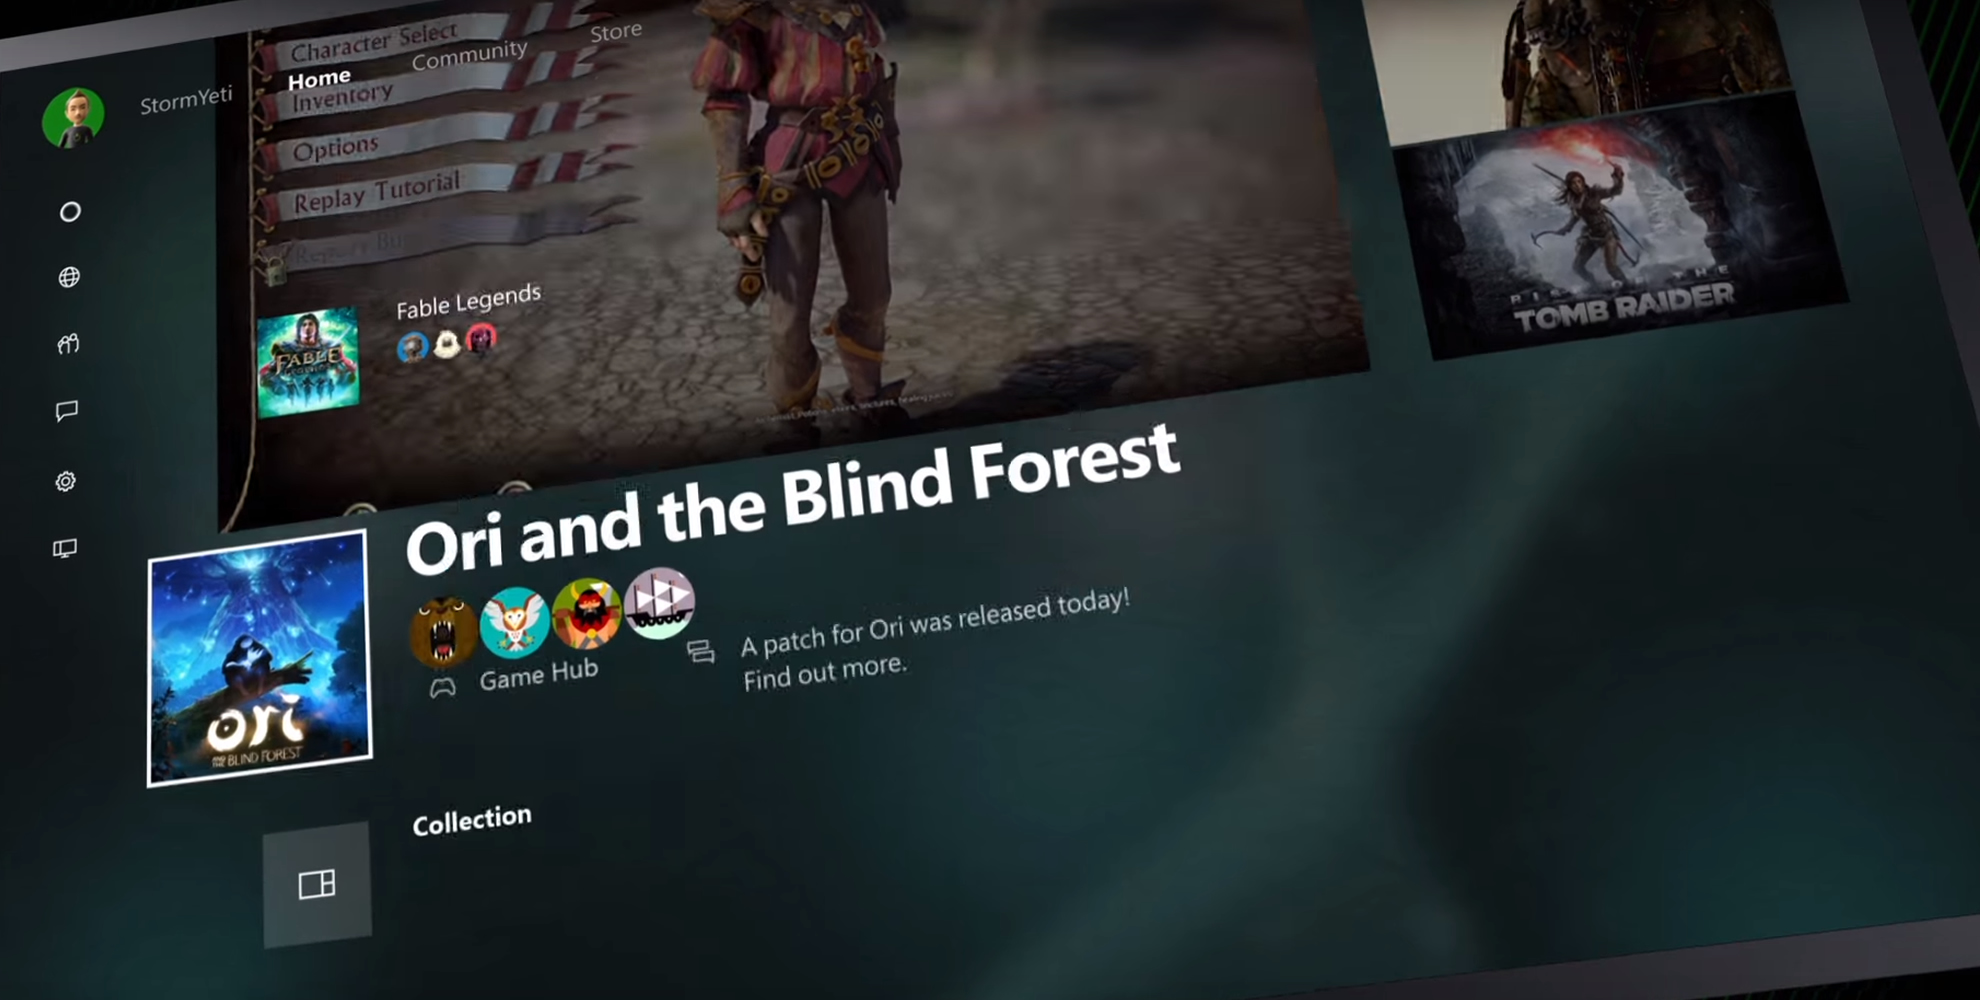 Xbox One Experience: A true example of good UI